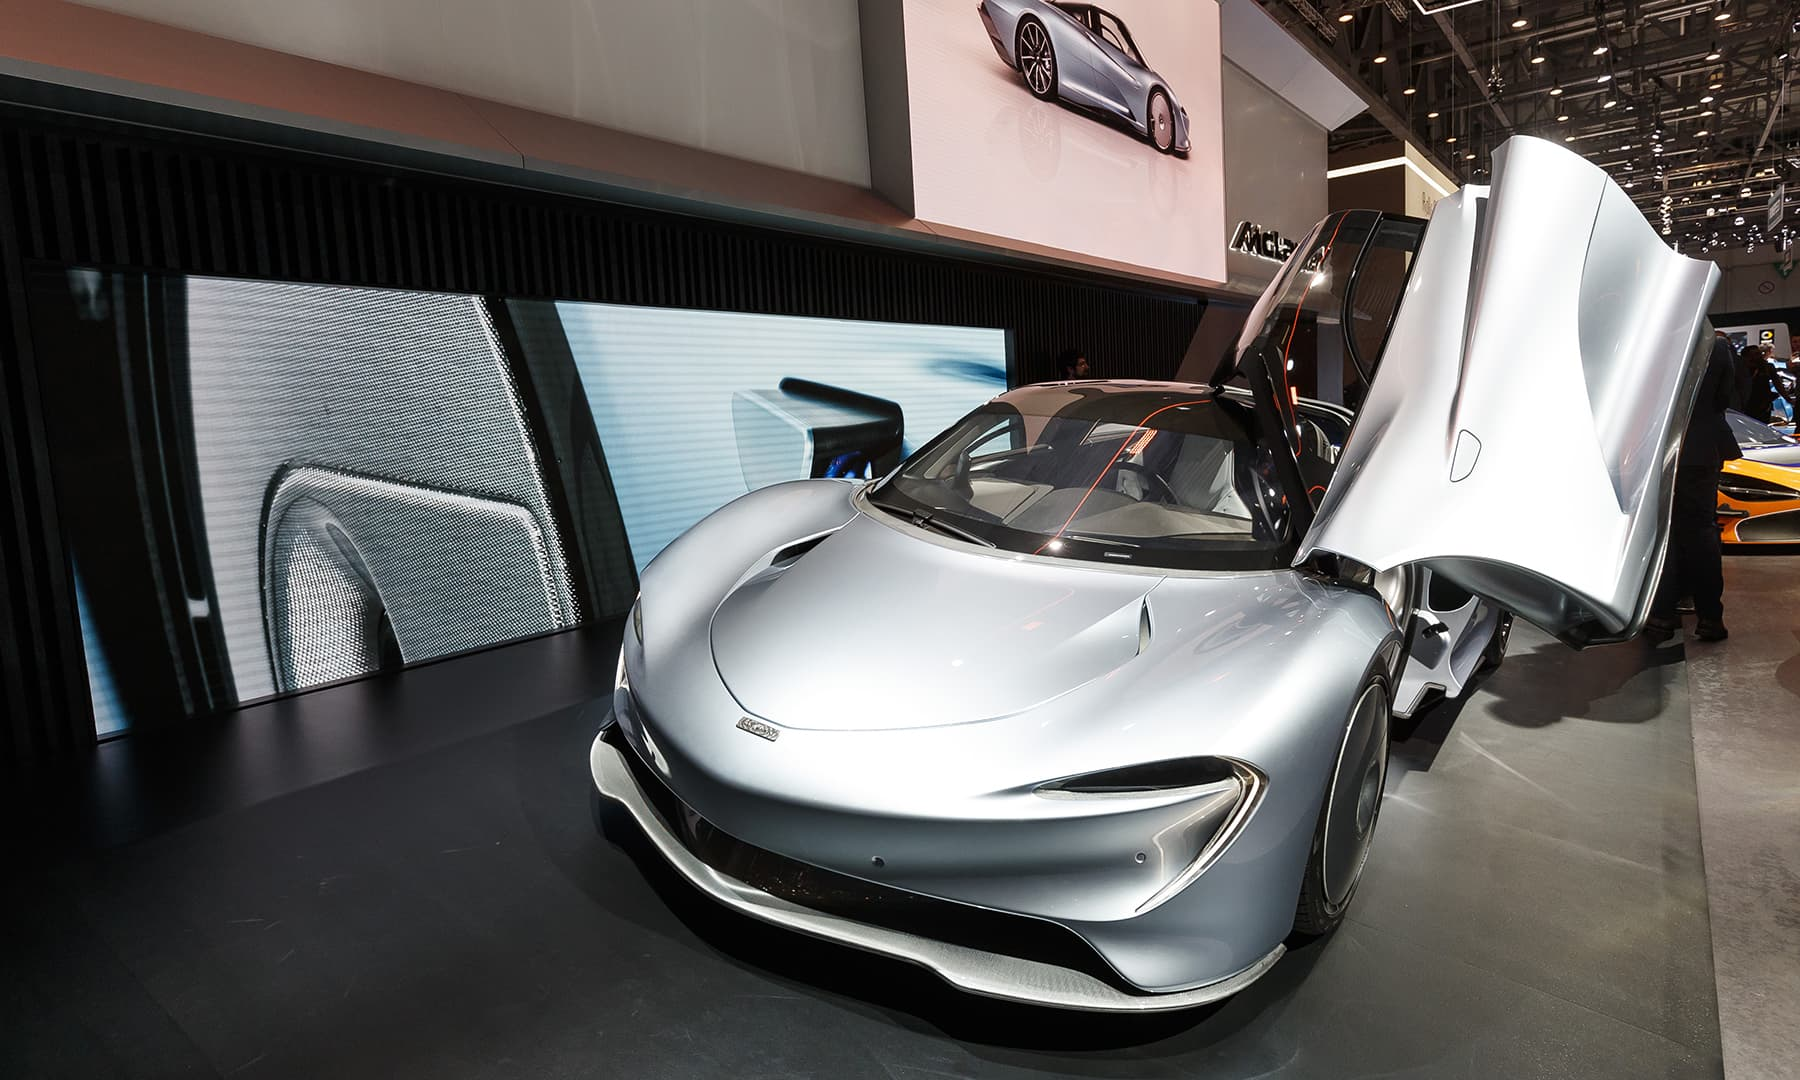 The new McLaren 'Speedtail' concept car is presented during the press day at the 89th Geneva International Motor Show. — AP